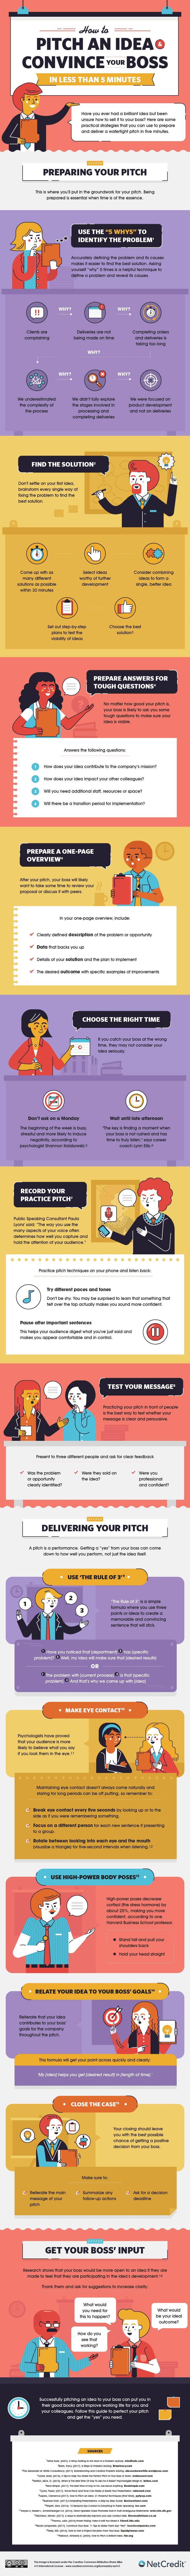 How to Pitch a New Idea to Your Boss - #infographic